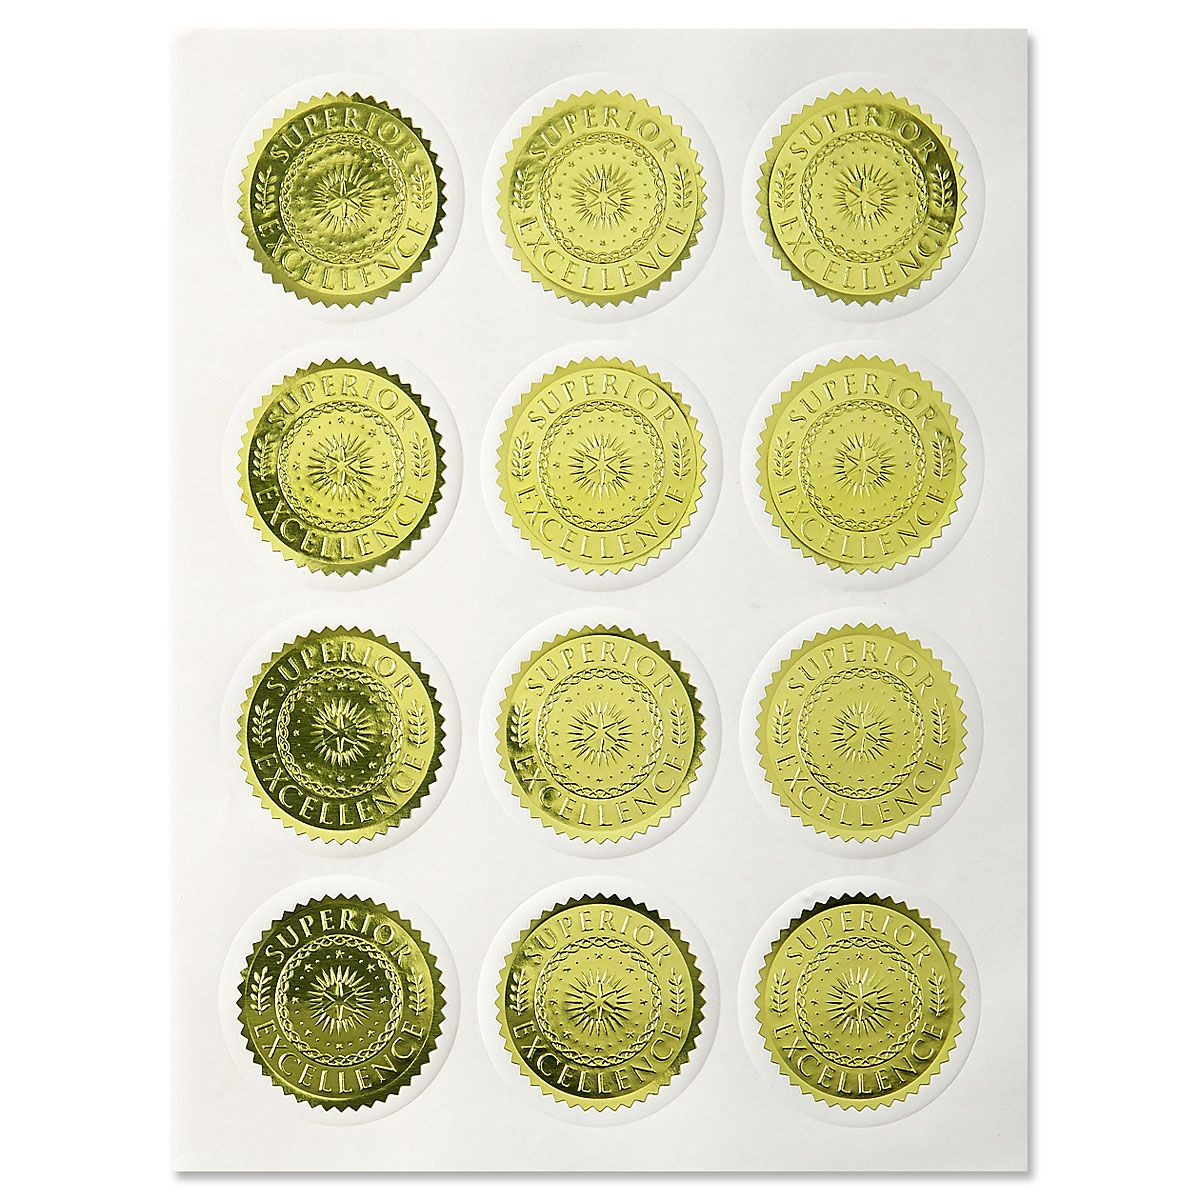 Gold Excellence Certificate Seals